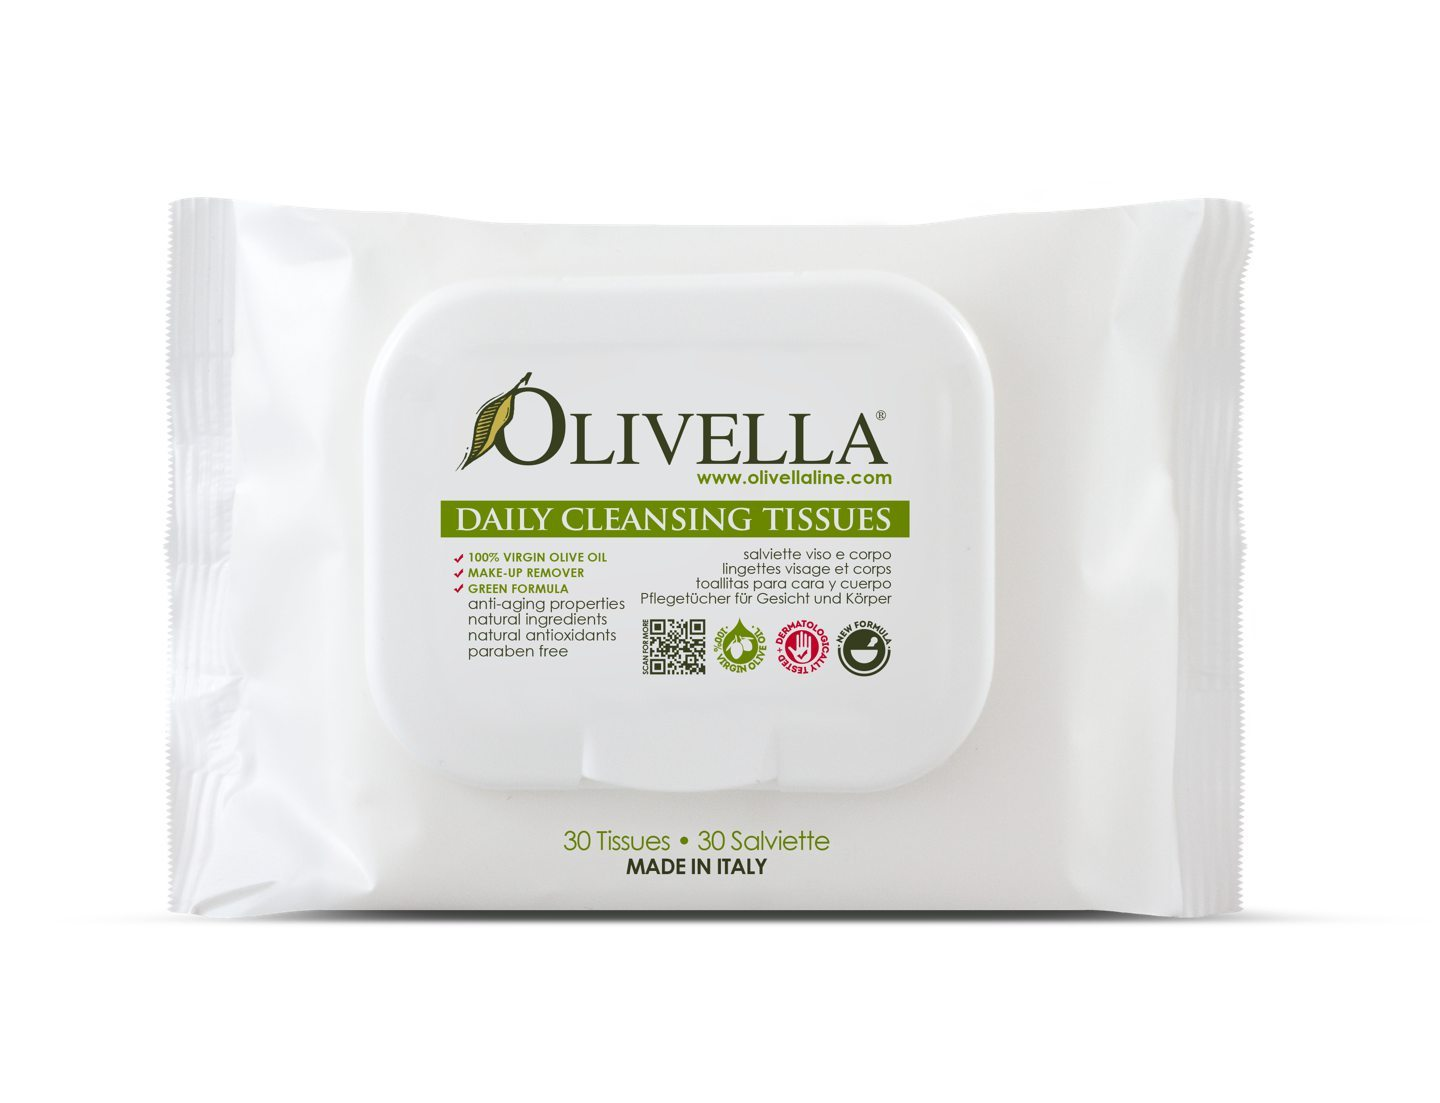 Olivella Daily Cleansing Tissues 30pk - Olivella Official Store